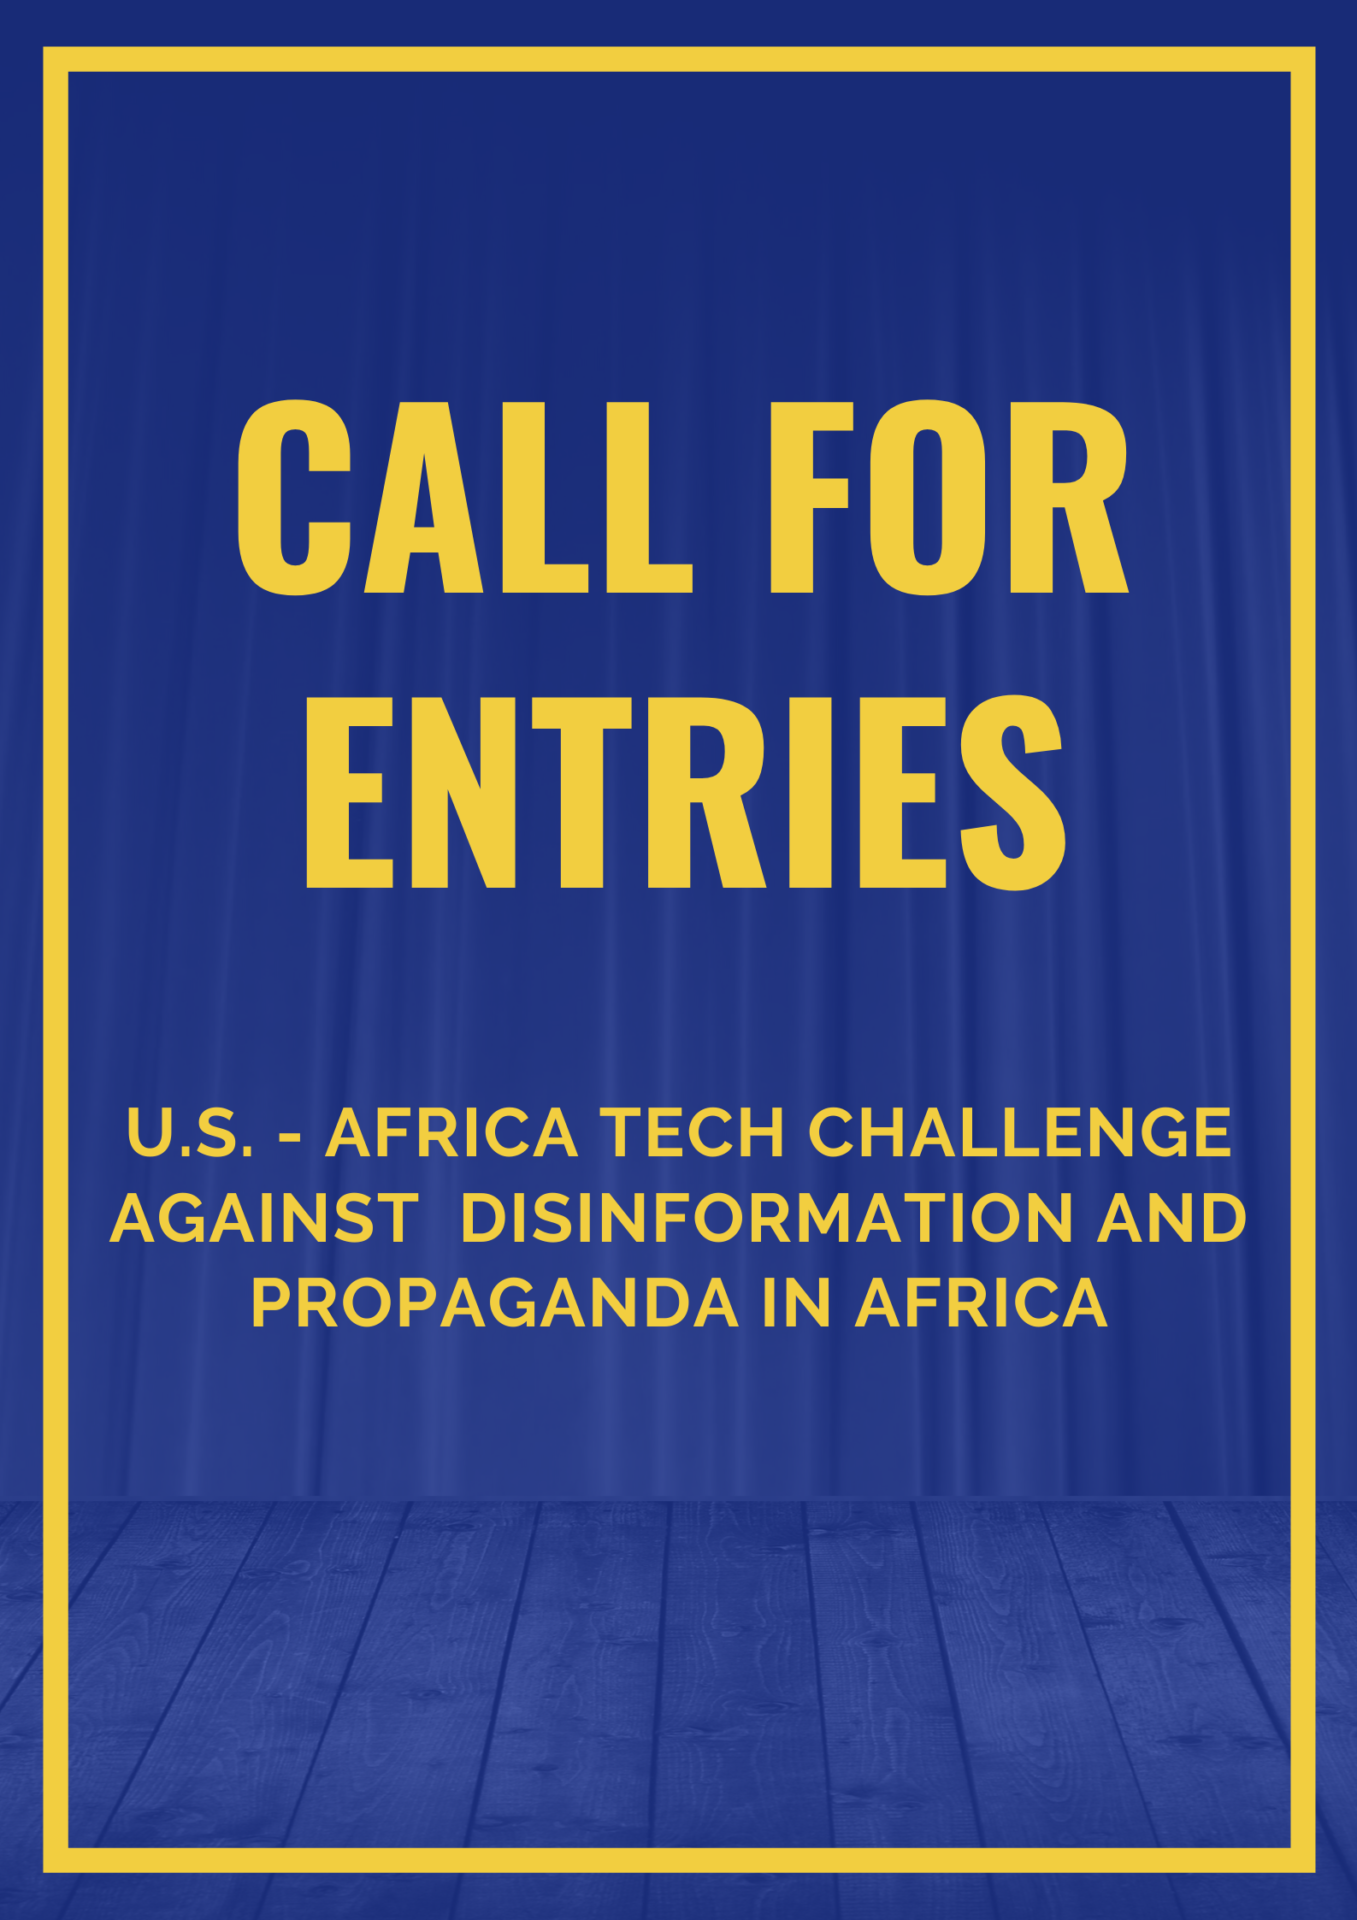 Call for Entries: African Tech Challenge Against Disinformation and Propaganda